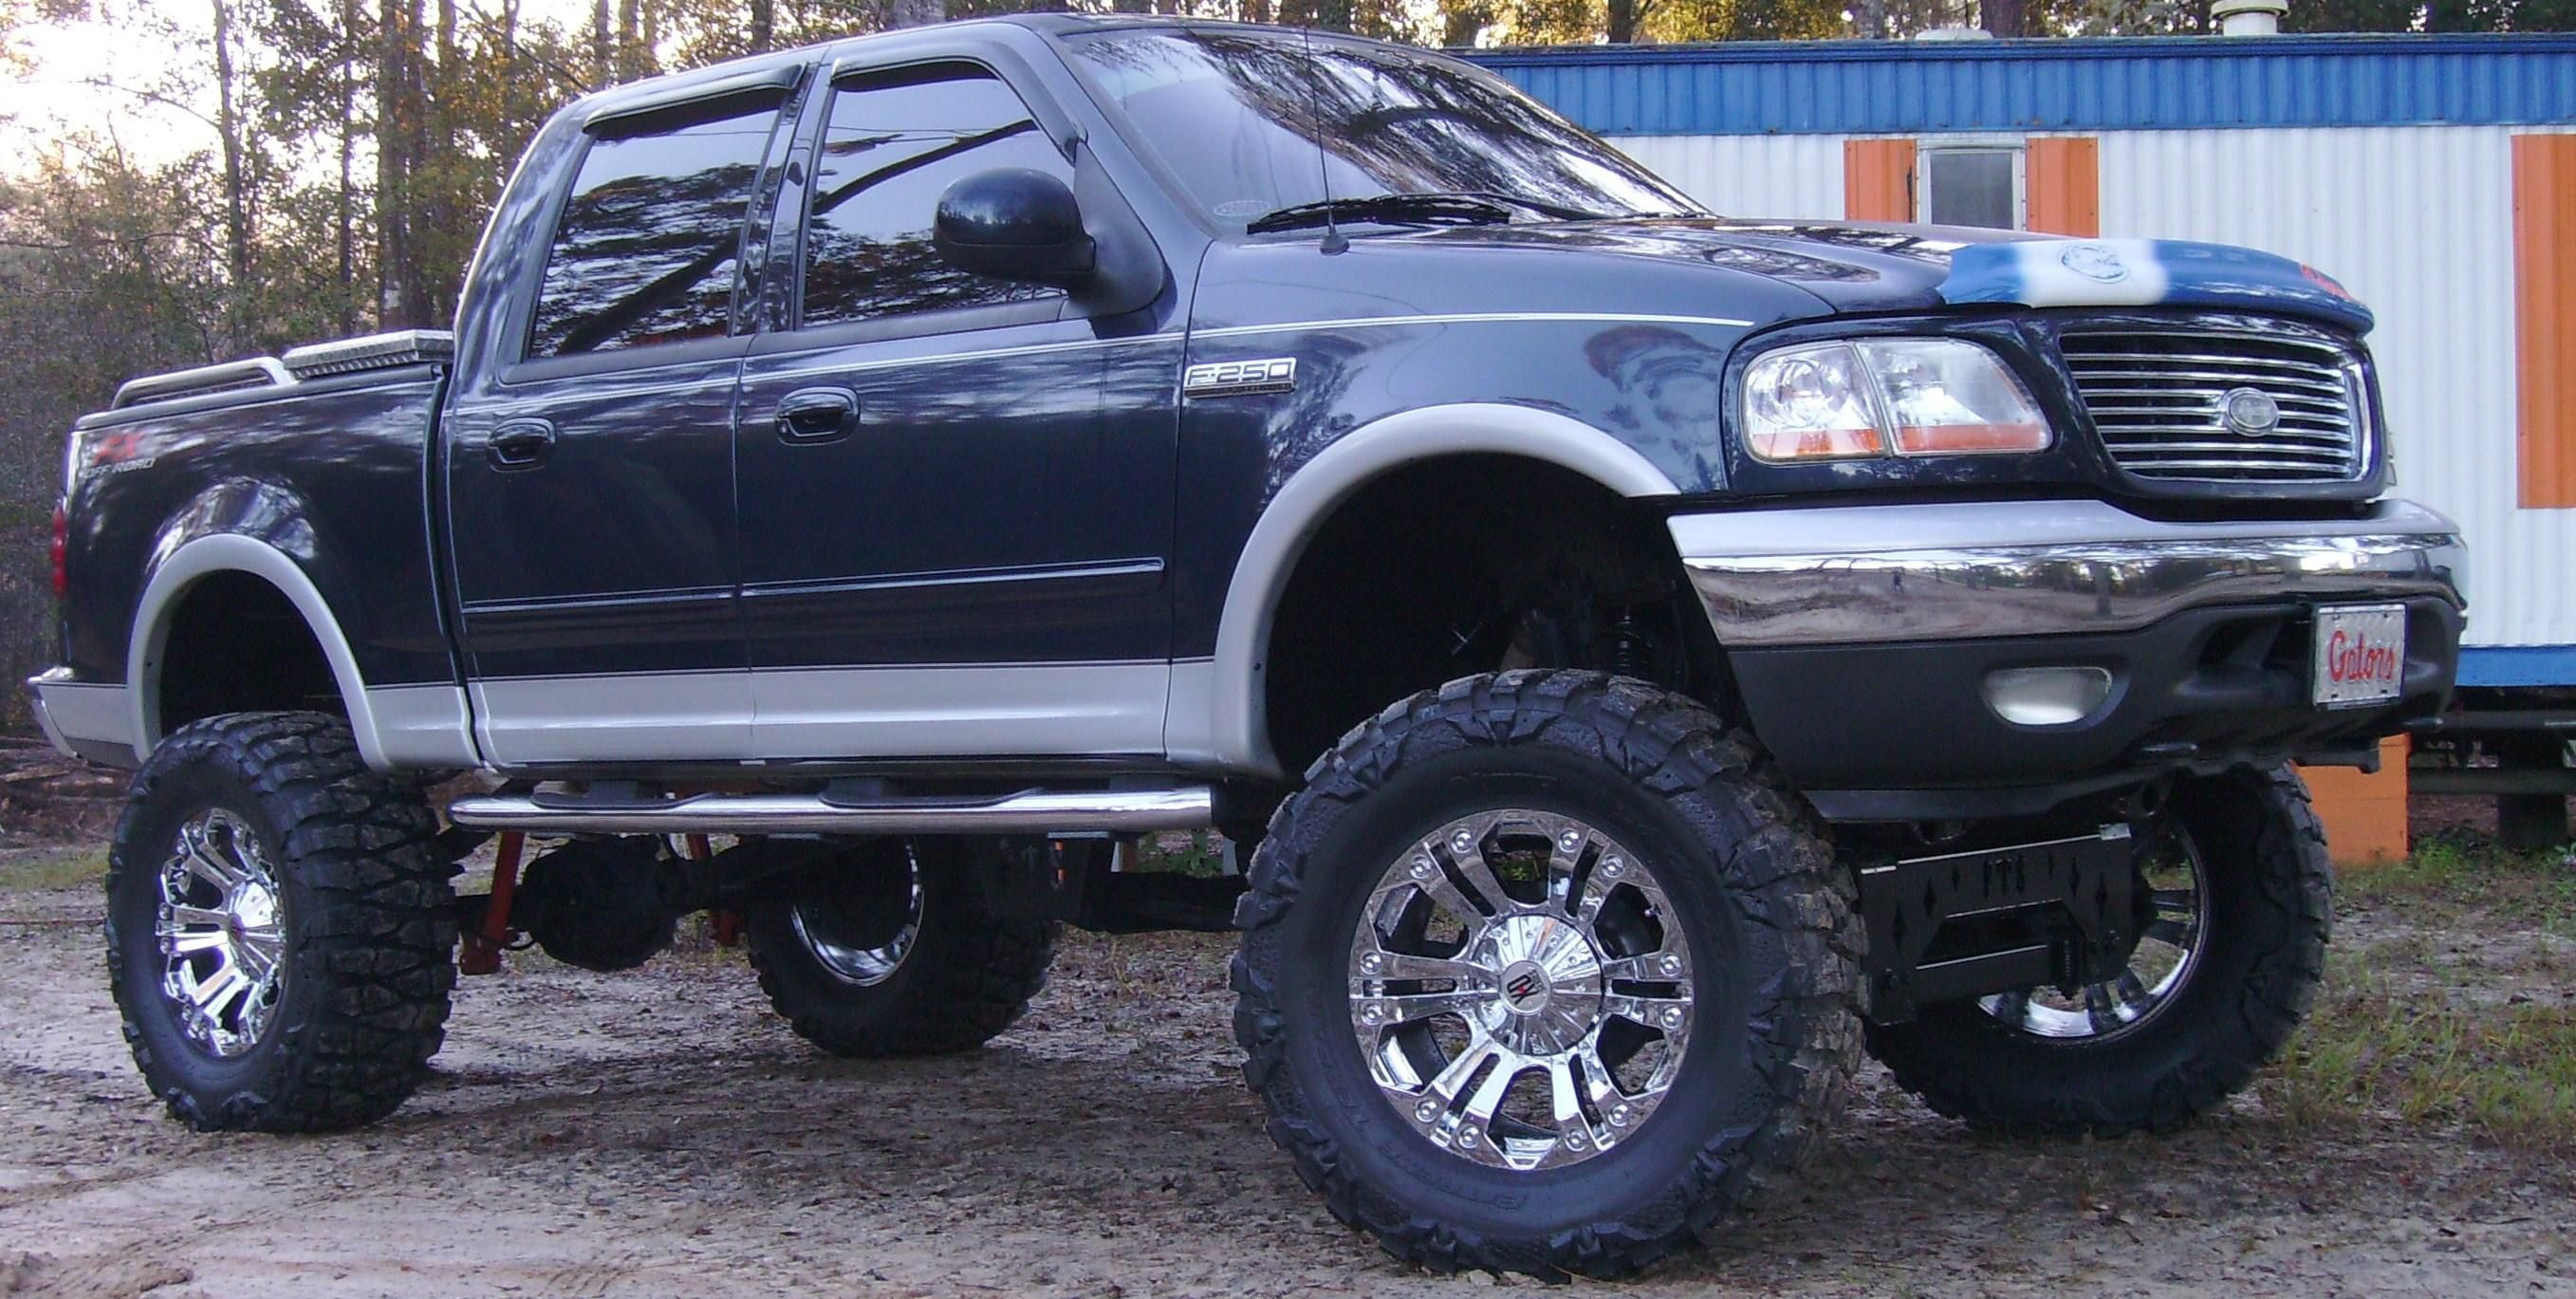 Worksheet. View Another baxleybrian 2002 Ford F150 SuperCrew Cab post